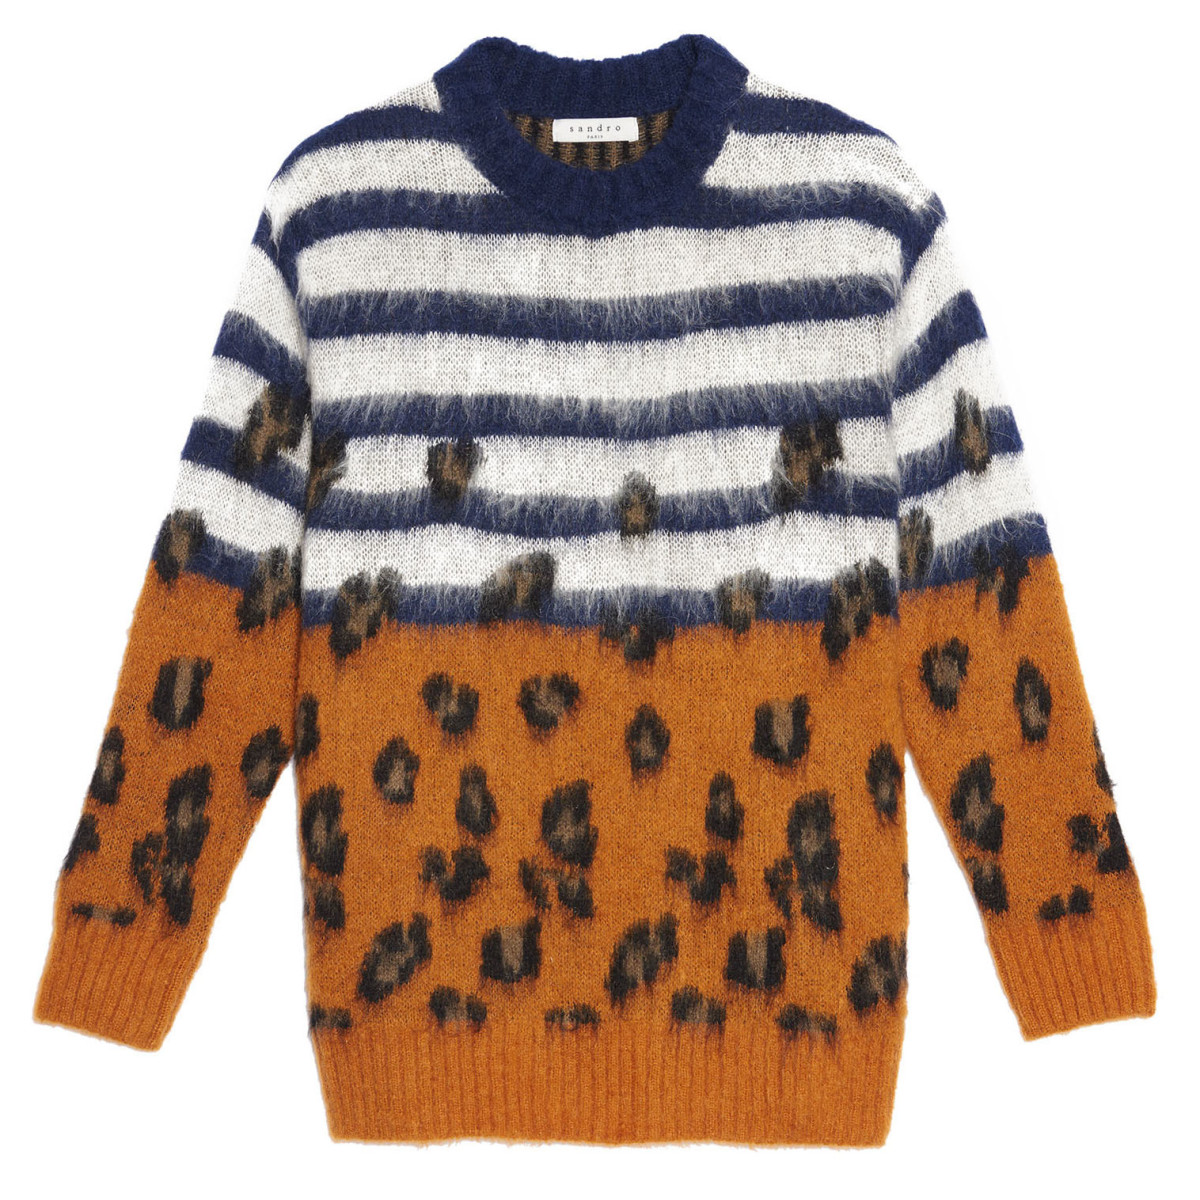 Sandro's fall sale is up to 50 percent off. Sandro sweater, now $328, available at Sandro.